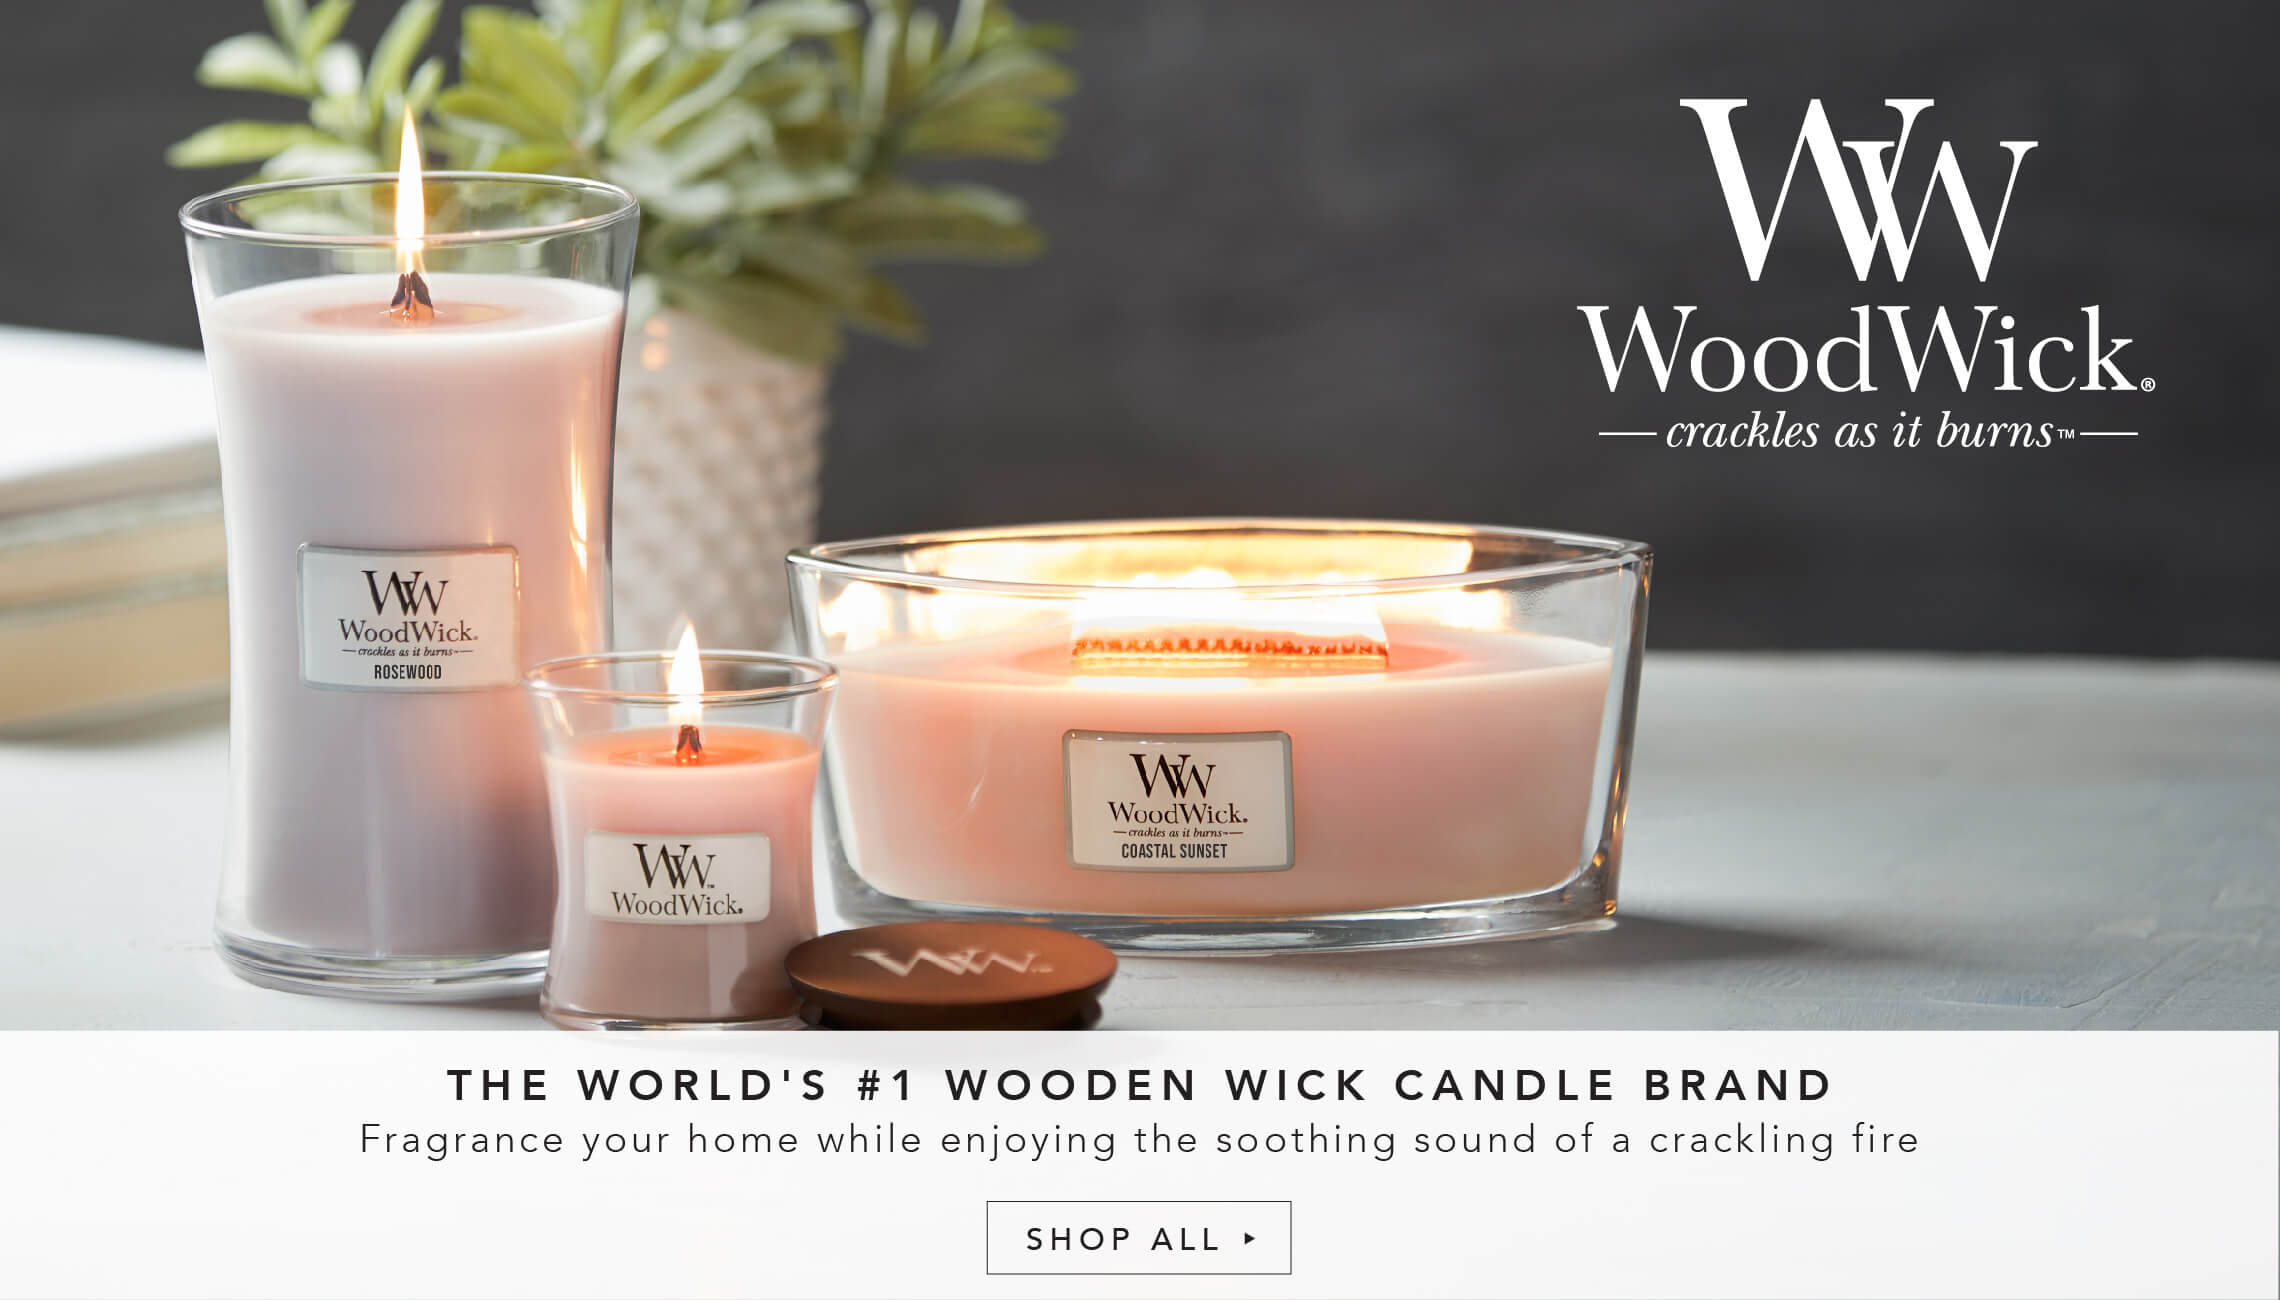 The world's #1 wooden wick candle brand